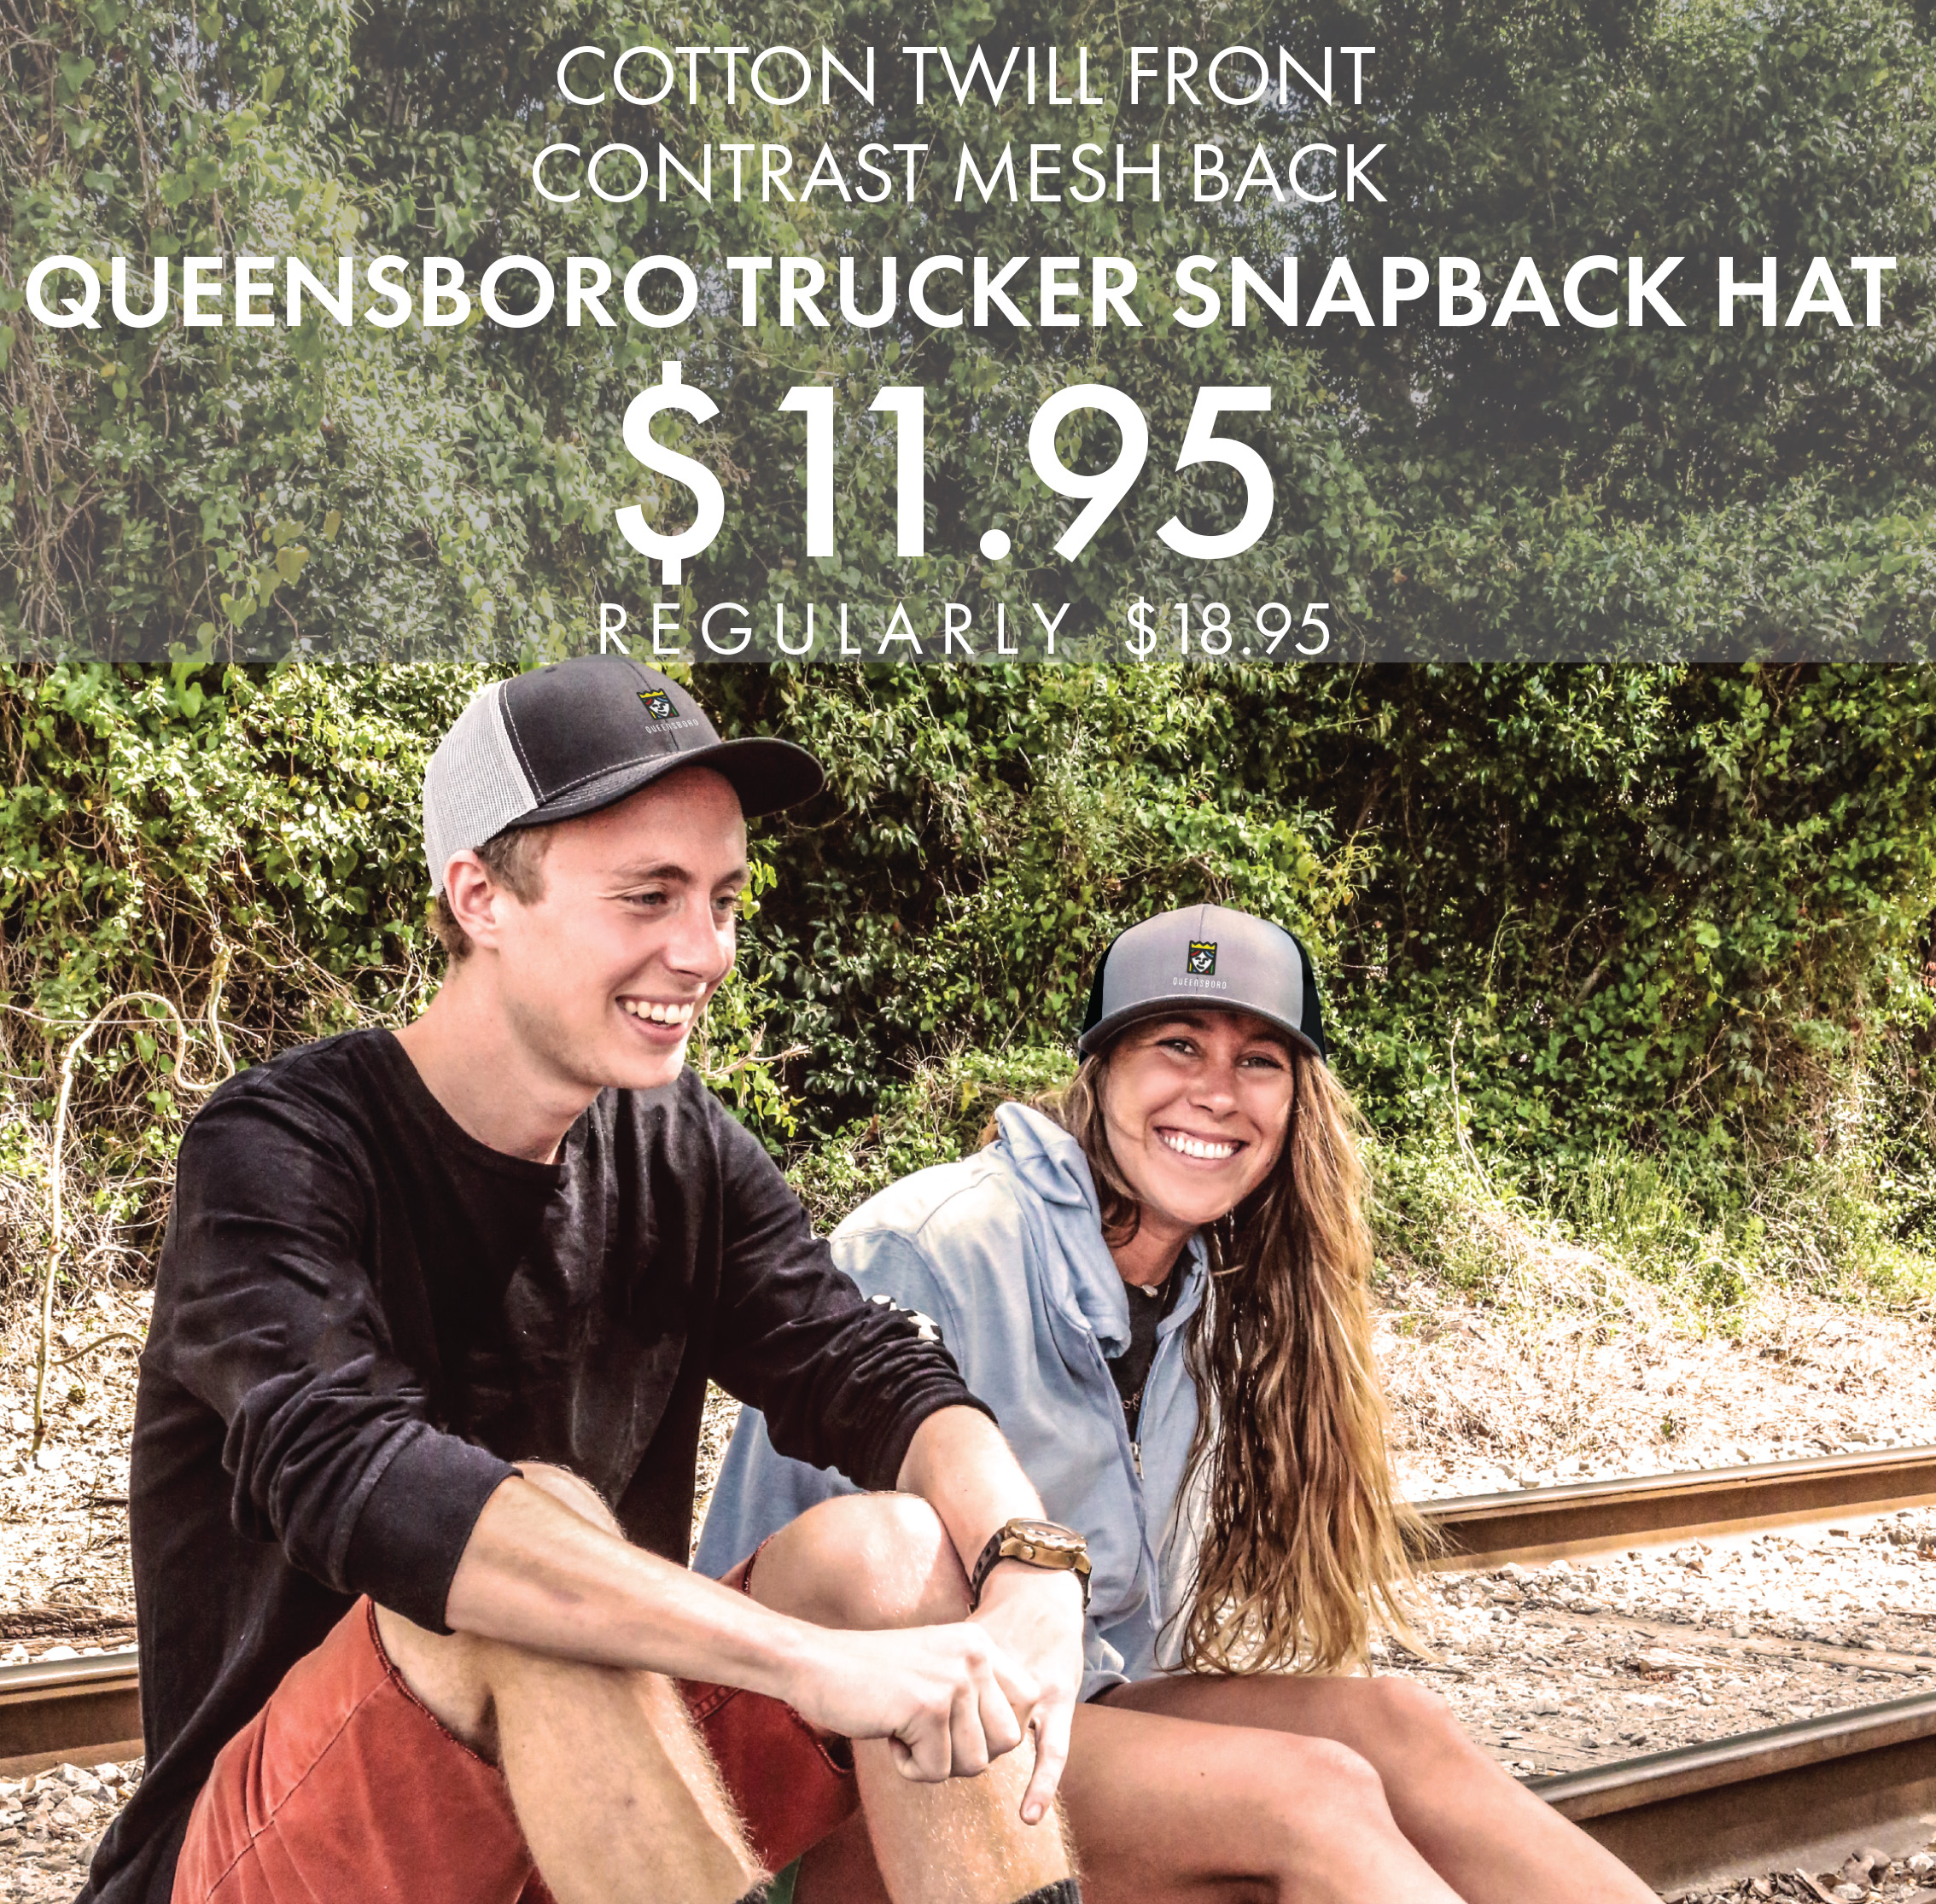 Custom Embroidered Queensboro Trucker Snapback Hats